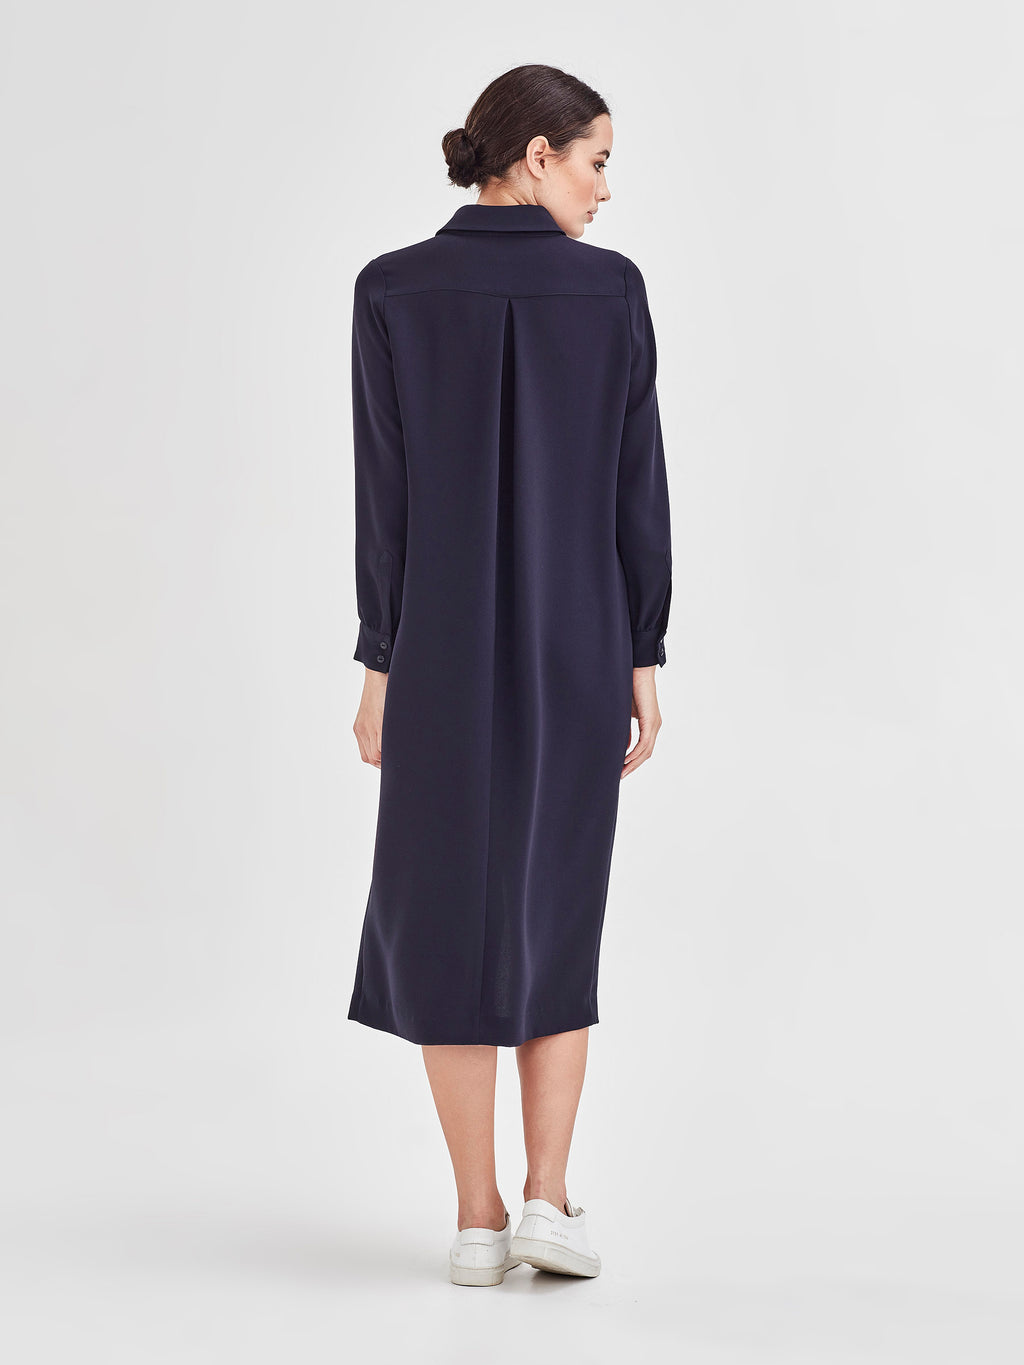 Molly Shirt Dress (Luxe Suiting) Navy